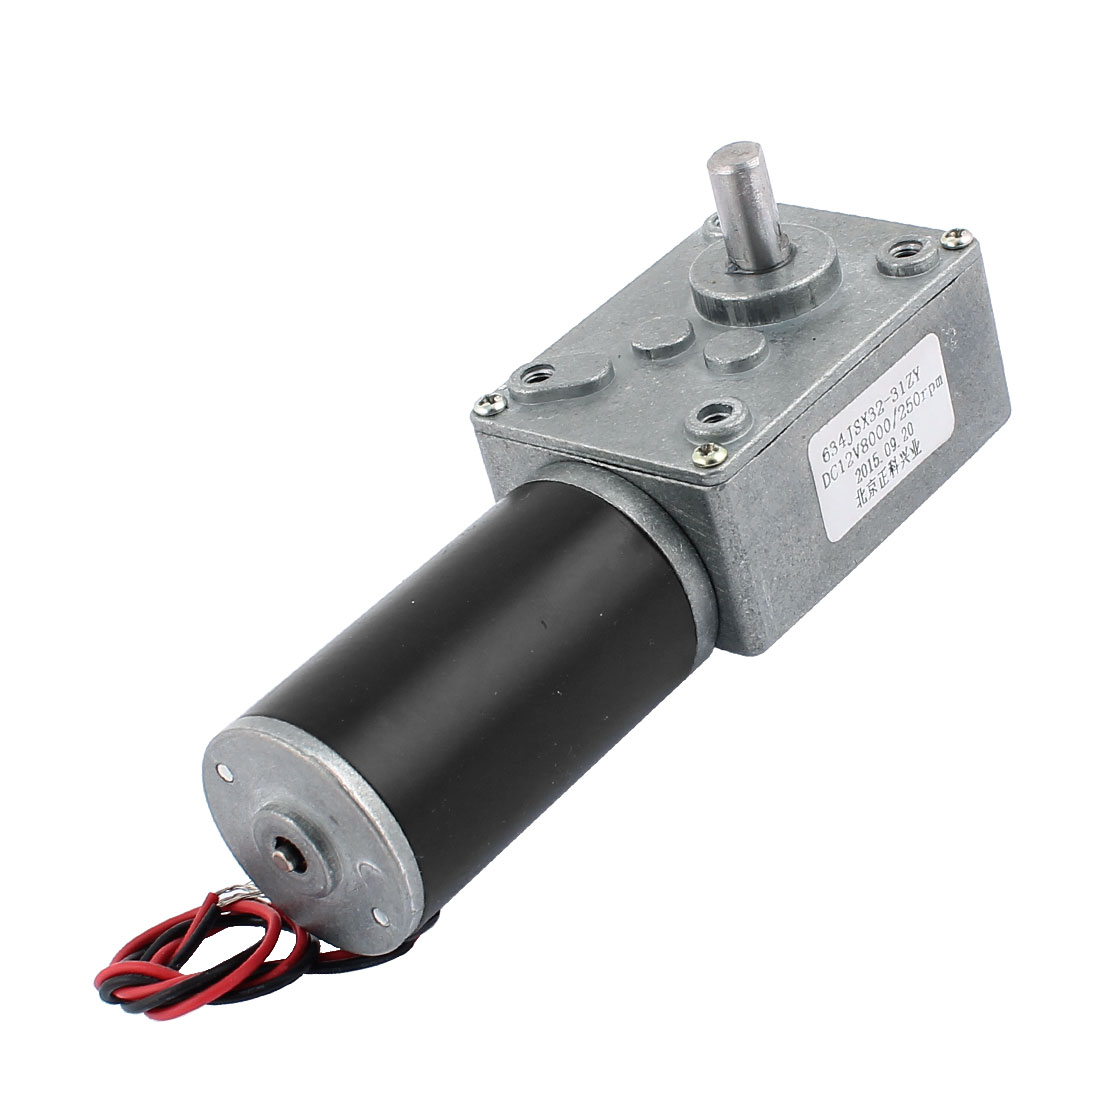 DC 12V 250RPM 8mmx14mm D-Shape Shaft Electric Power Turbo Worm Geared Motor